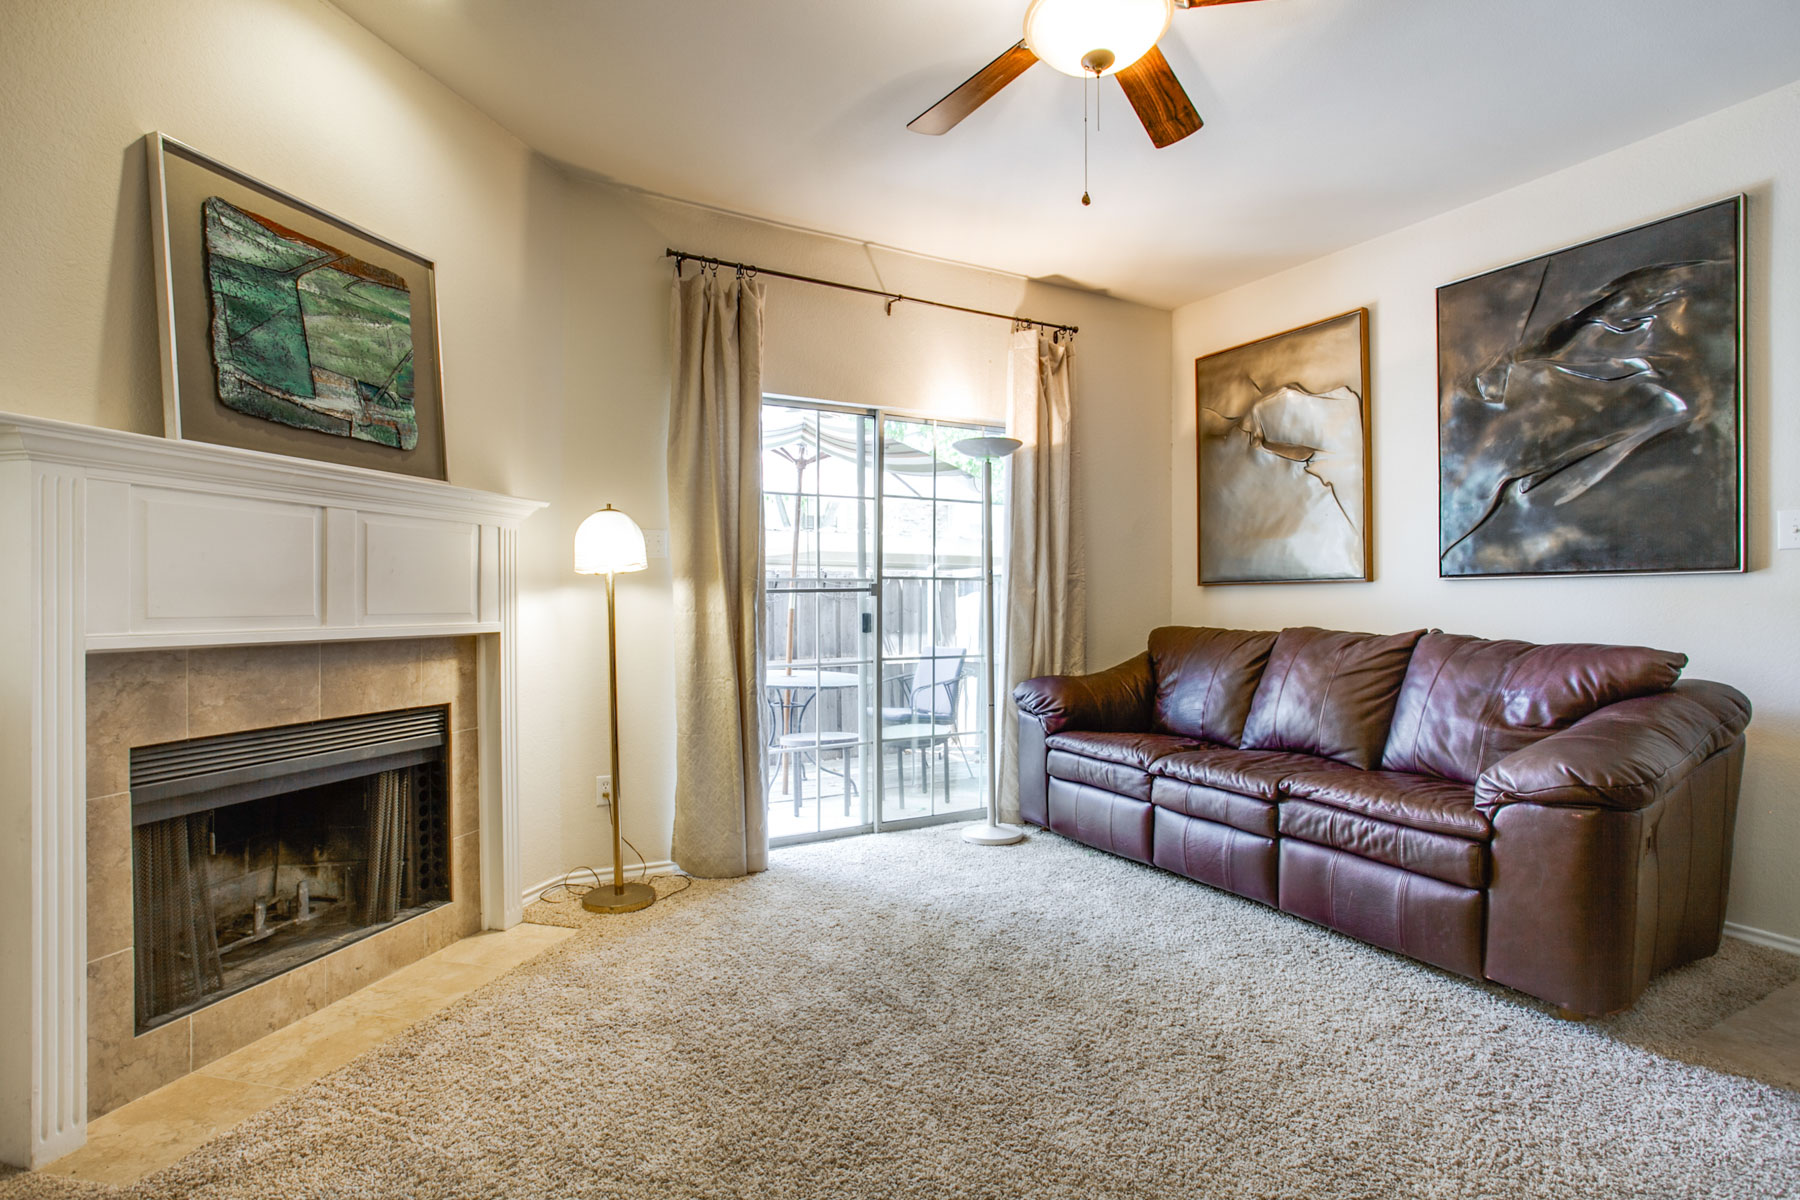 Condominium for Sale at 6210 Oram #5 Dallas, Texas, 75214 United States